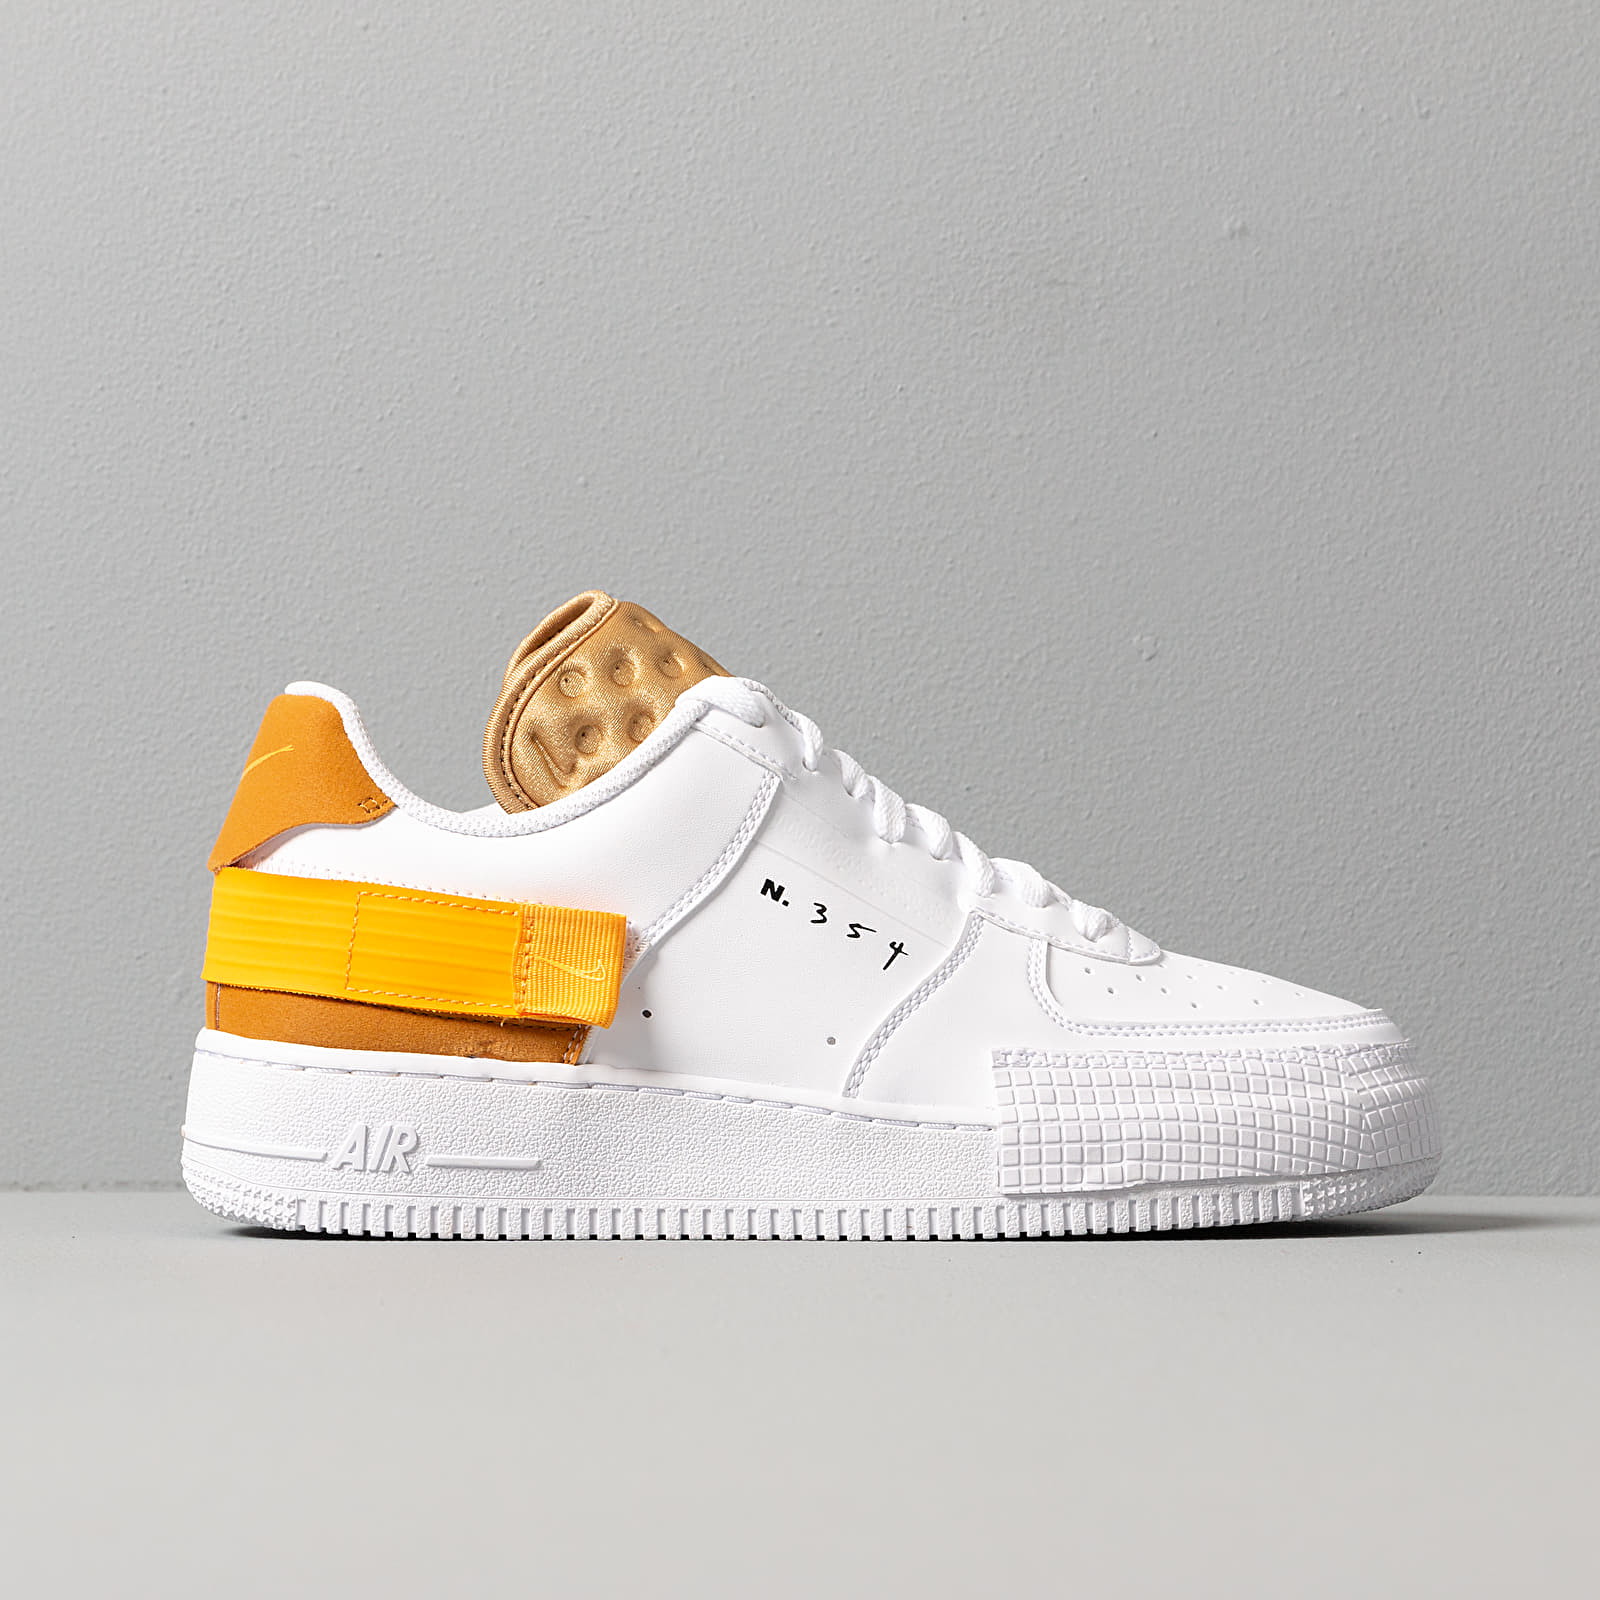 Nike Air Force 1 Type White University Gold Gold Suede | Footshop